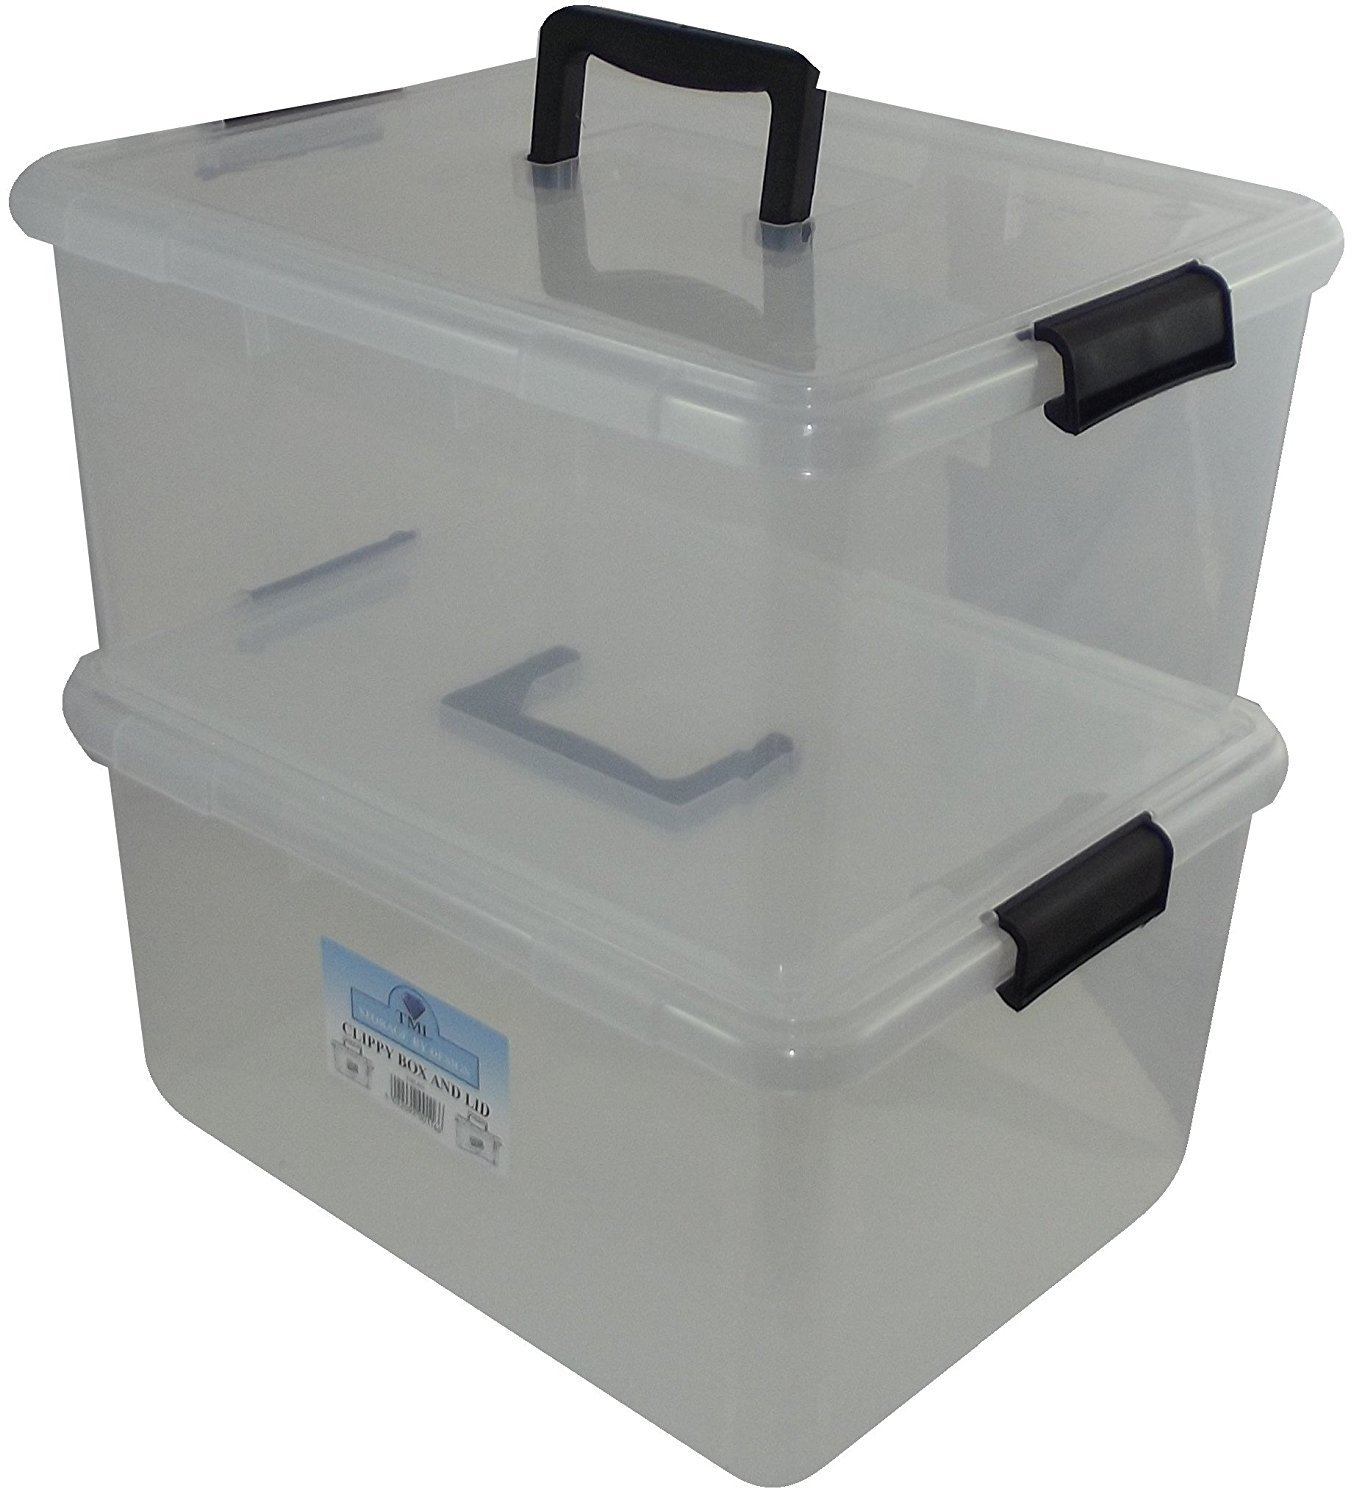 tub product mooreco inc plastic tubs storage